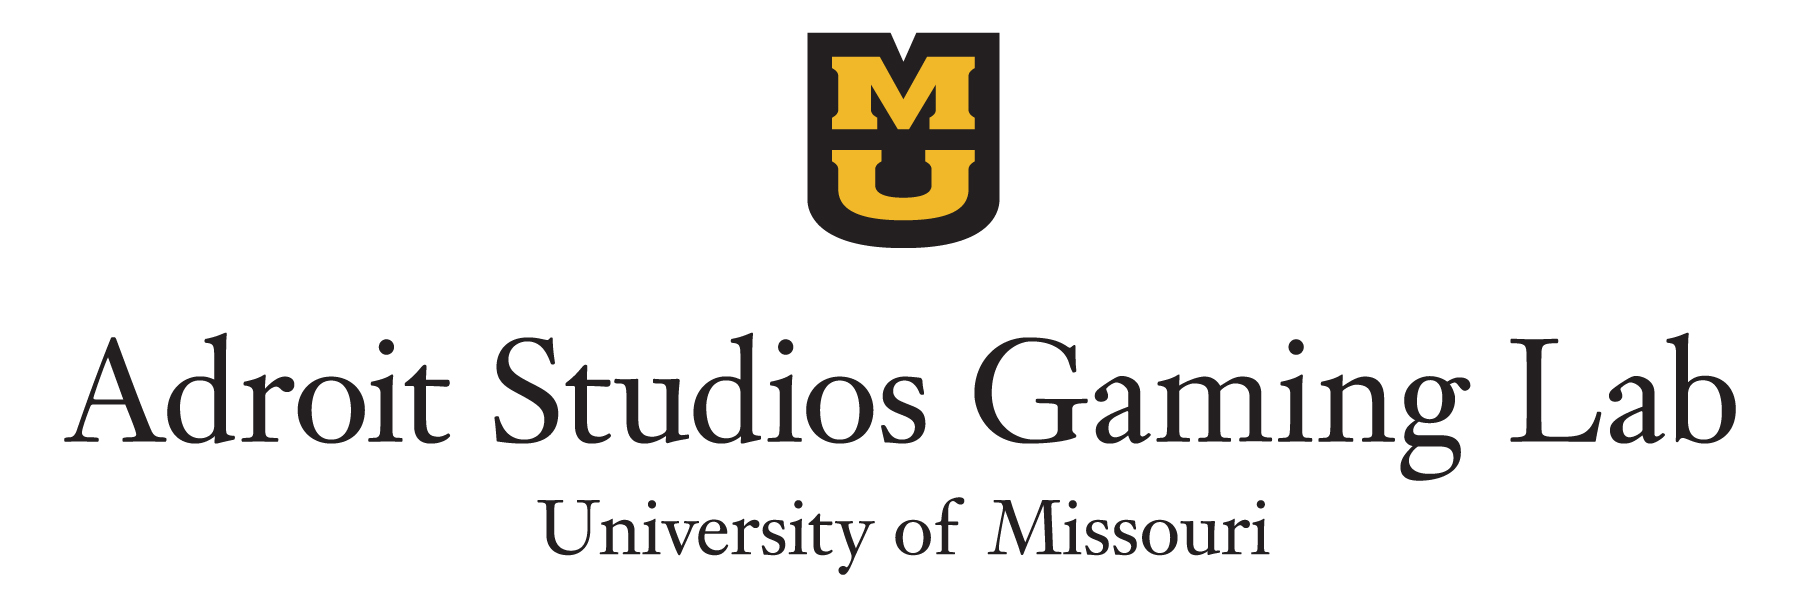 Adroit Studios Gaming Lab logo, School of Information Science & Learning Technologies, University of Missouri College of Education